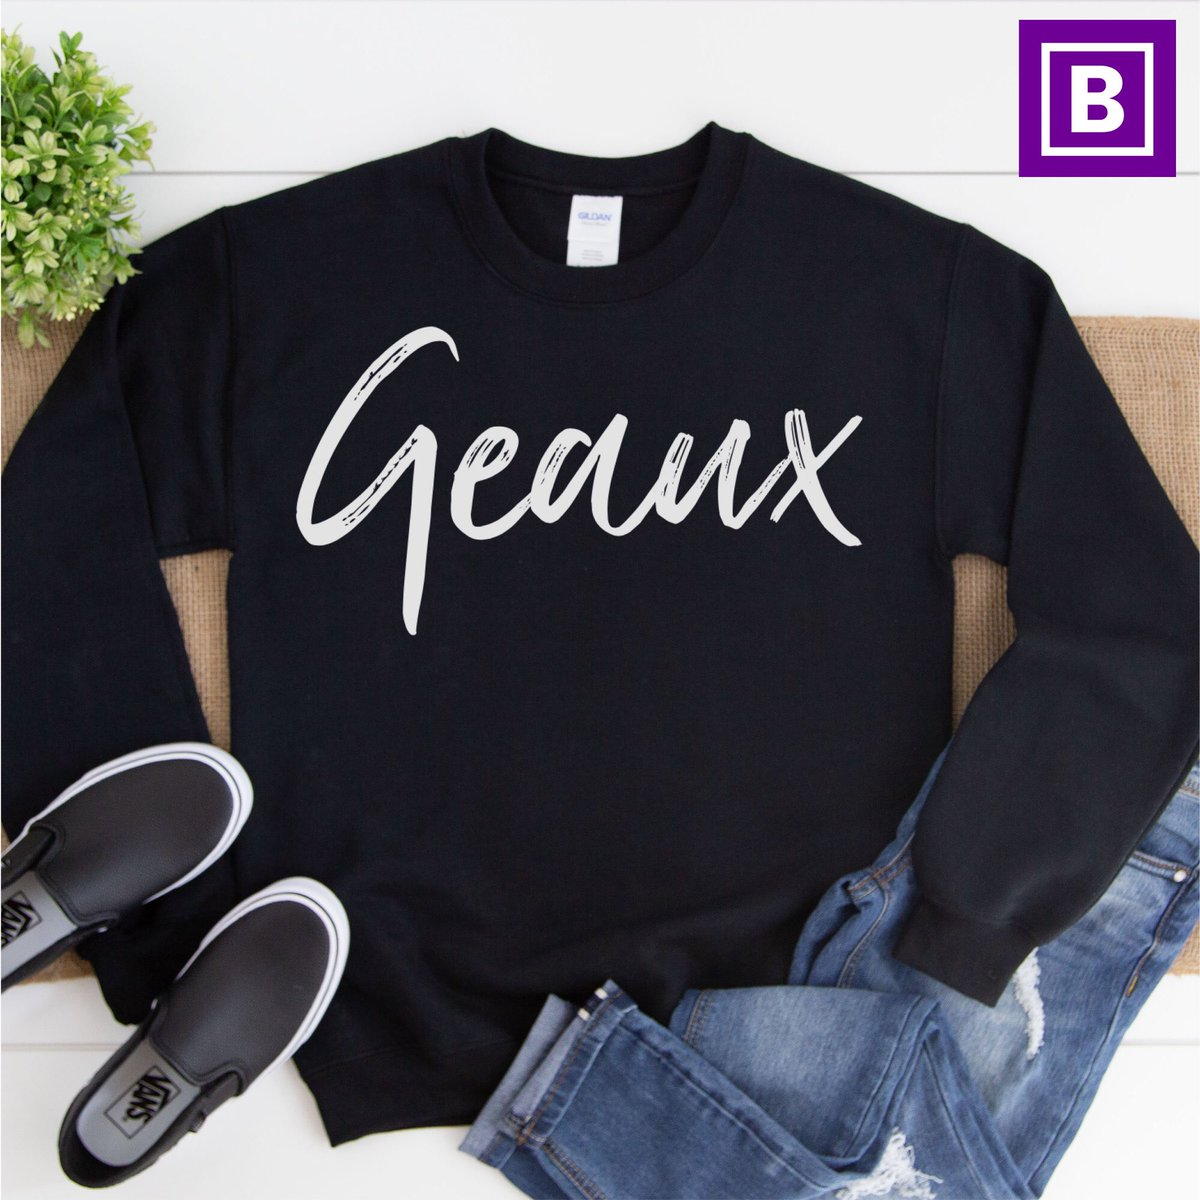 Excited to share this item from my #etsy shop: Geaux Sweatshirt LSU football New Orleans Saints shirt, LSU Tigers, Saints football shirt, Bayou Bengals, Superdome shirt, Geaux Saints  #brees #nola #saints #nfl #whodat #whodatnation